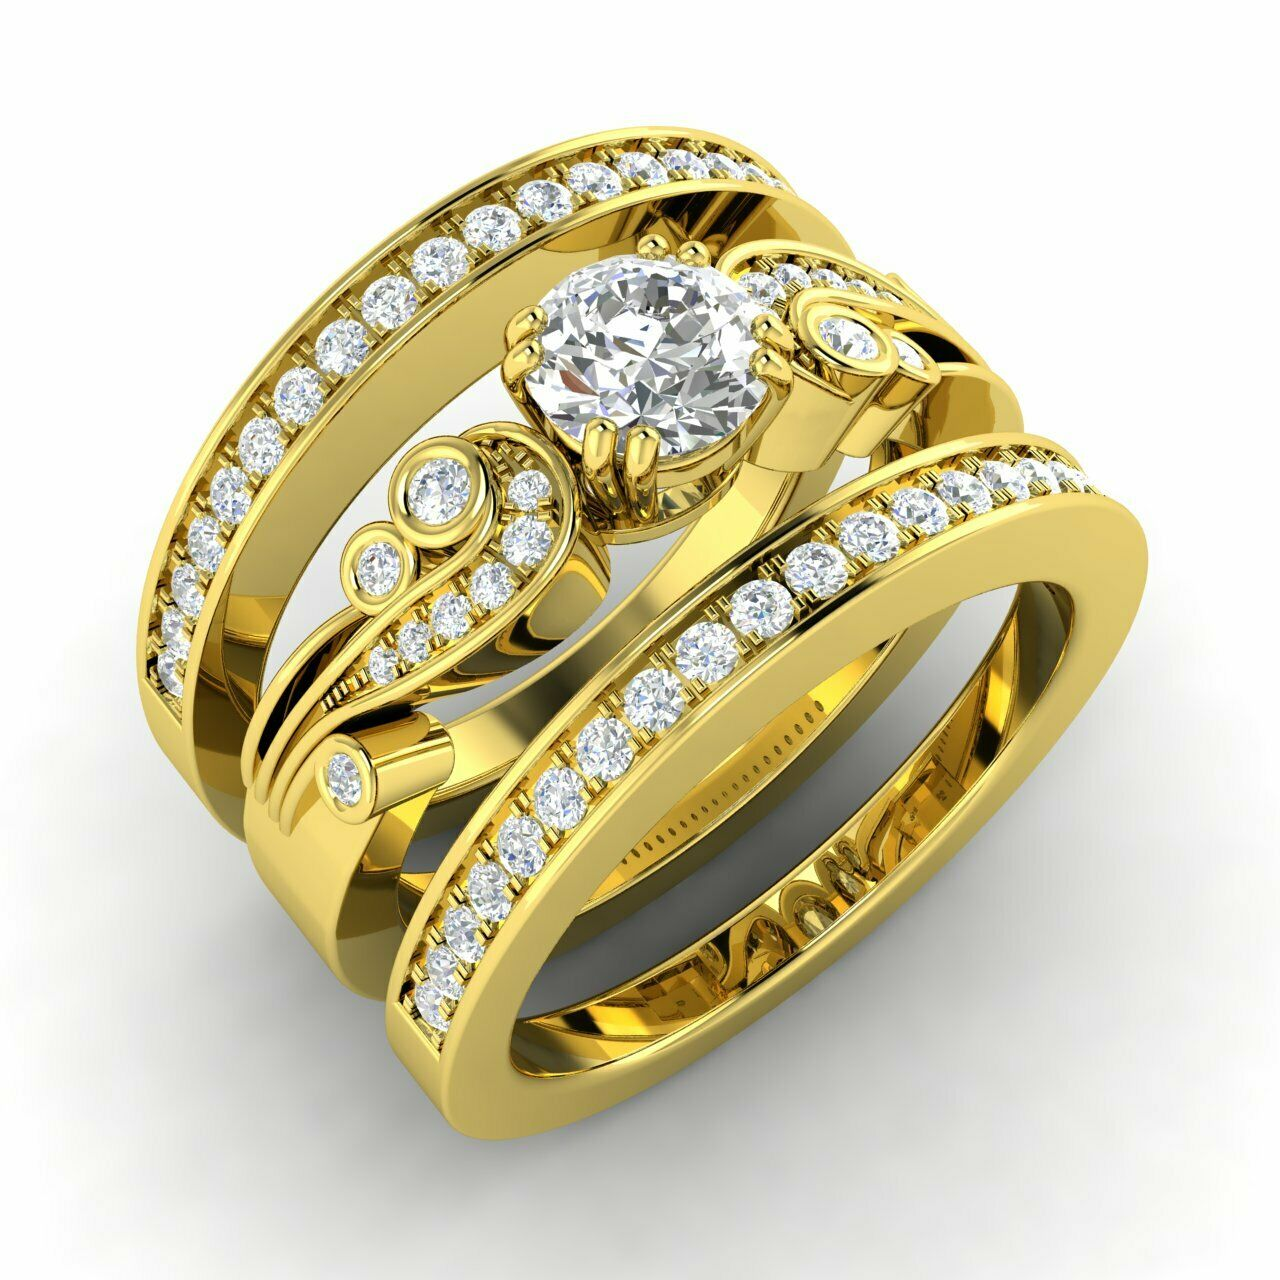 Natural Diamond Bridal Engagement Ring w/ 2 Matching Bands in 14k Yellow Gold